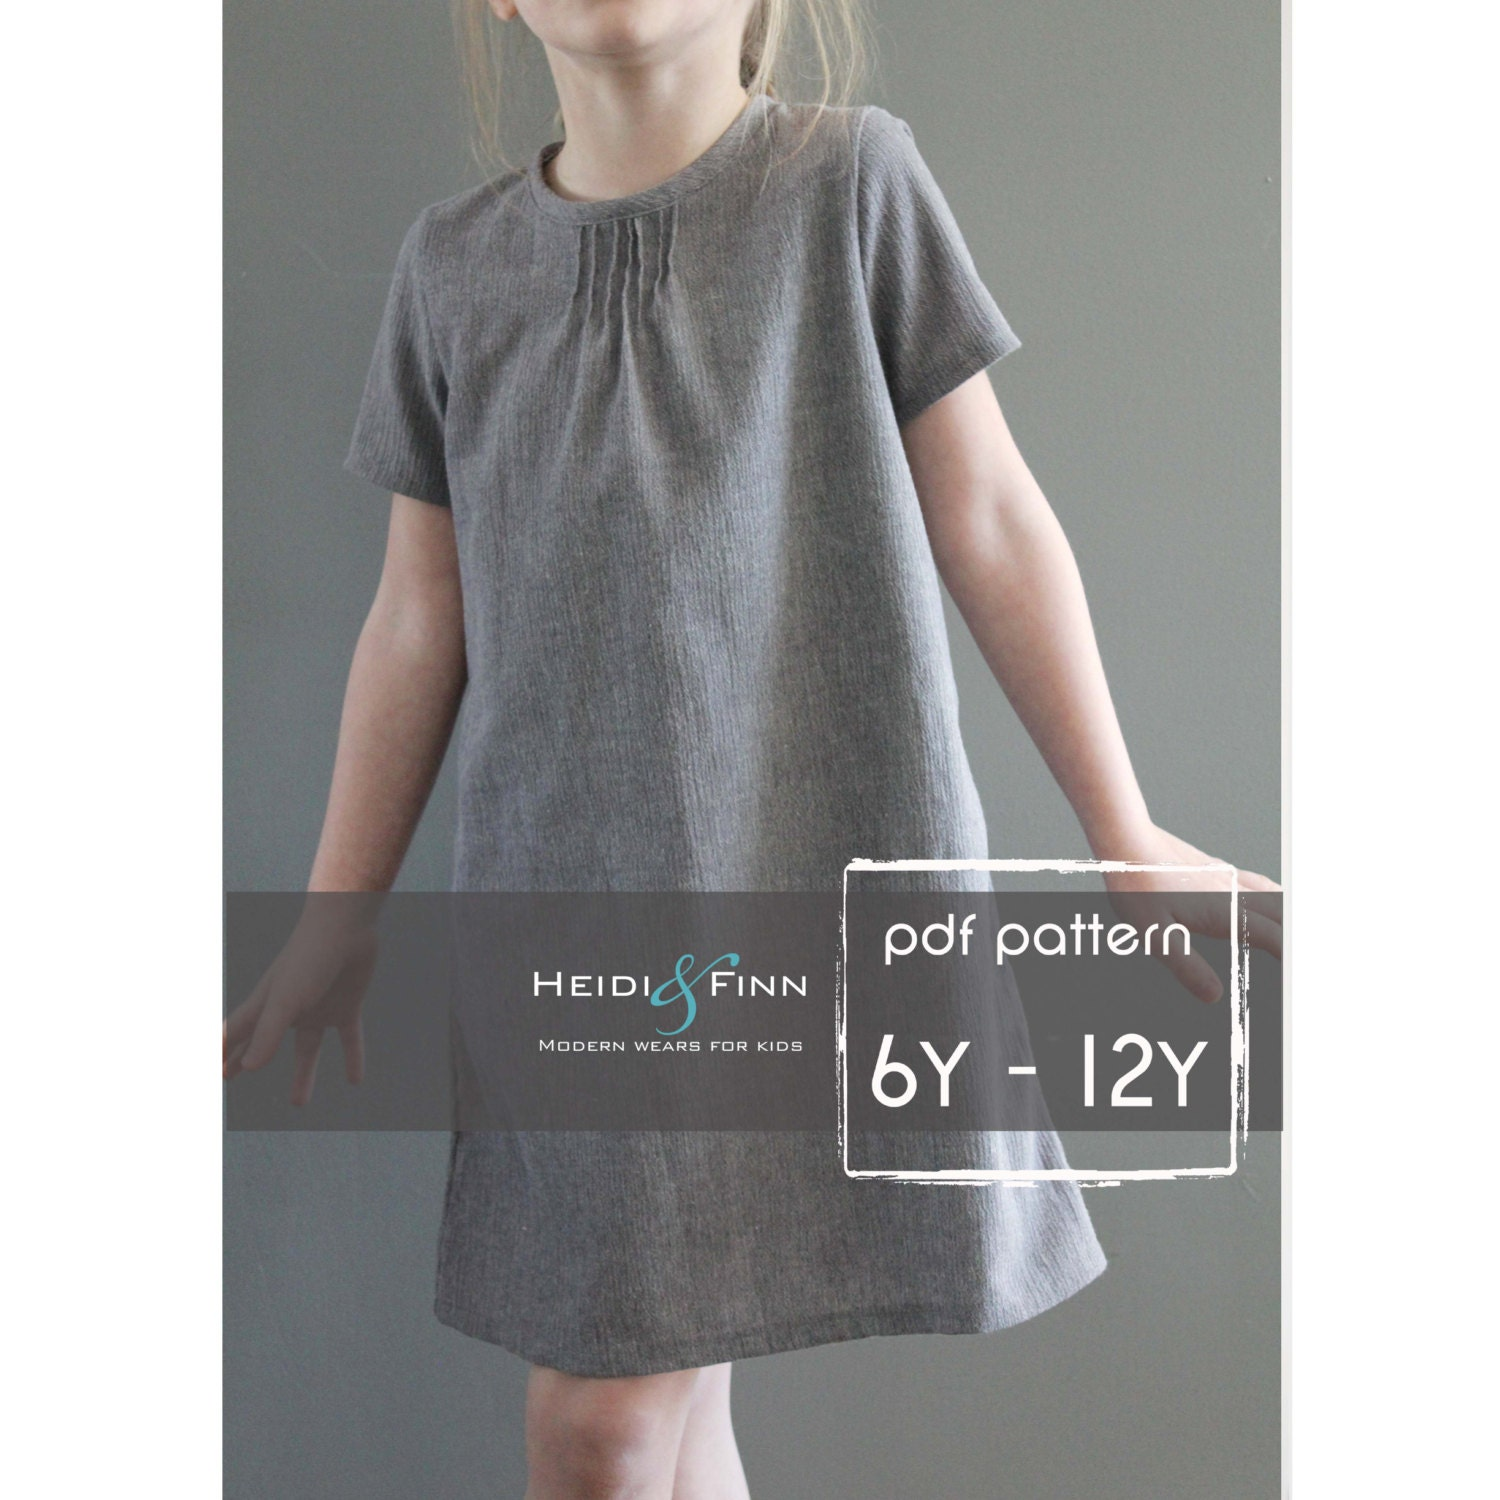 Pintuck blouse and dress pdf pattern and tutorial 6 12y easy zoom jeuxipadfo Image collections